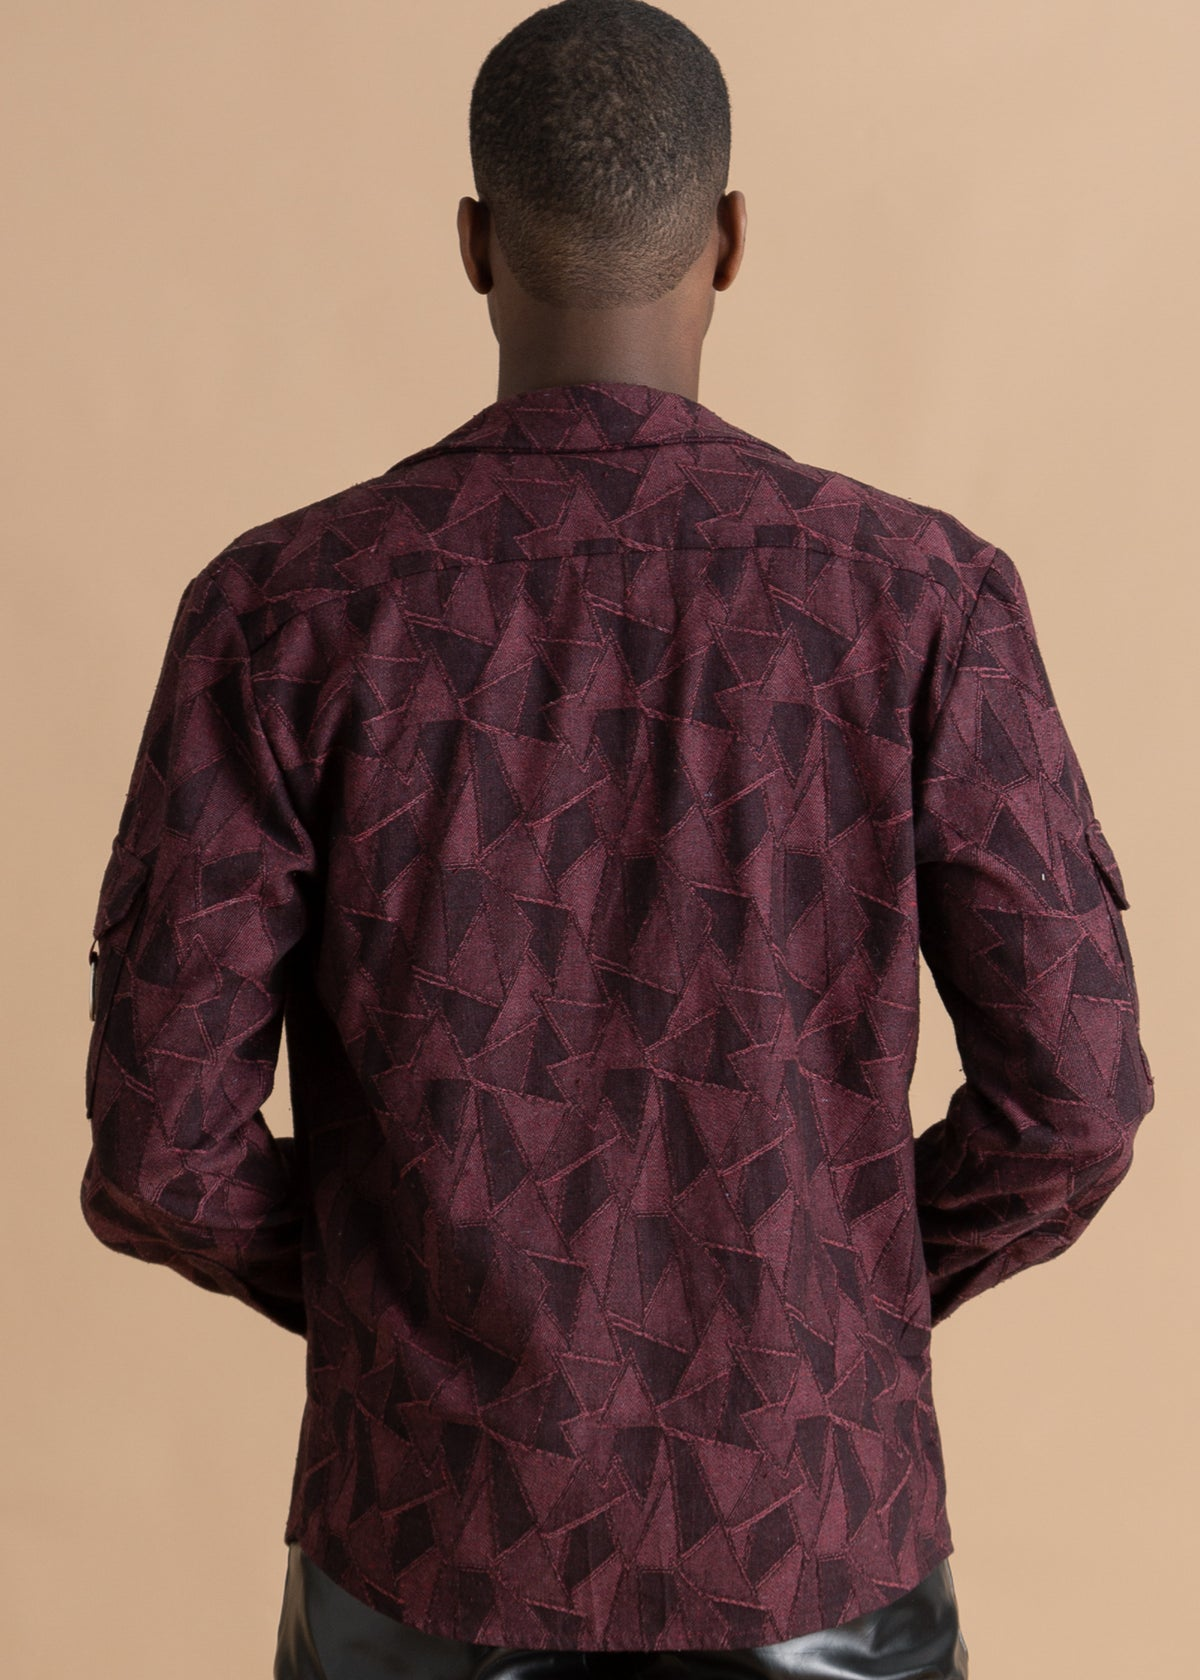 Nicholas Coutts Burgundy Jacquard Printed Men's Shirt